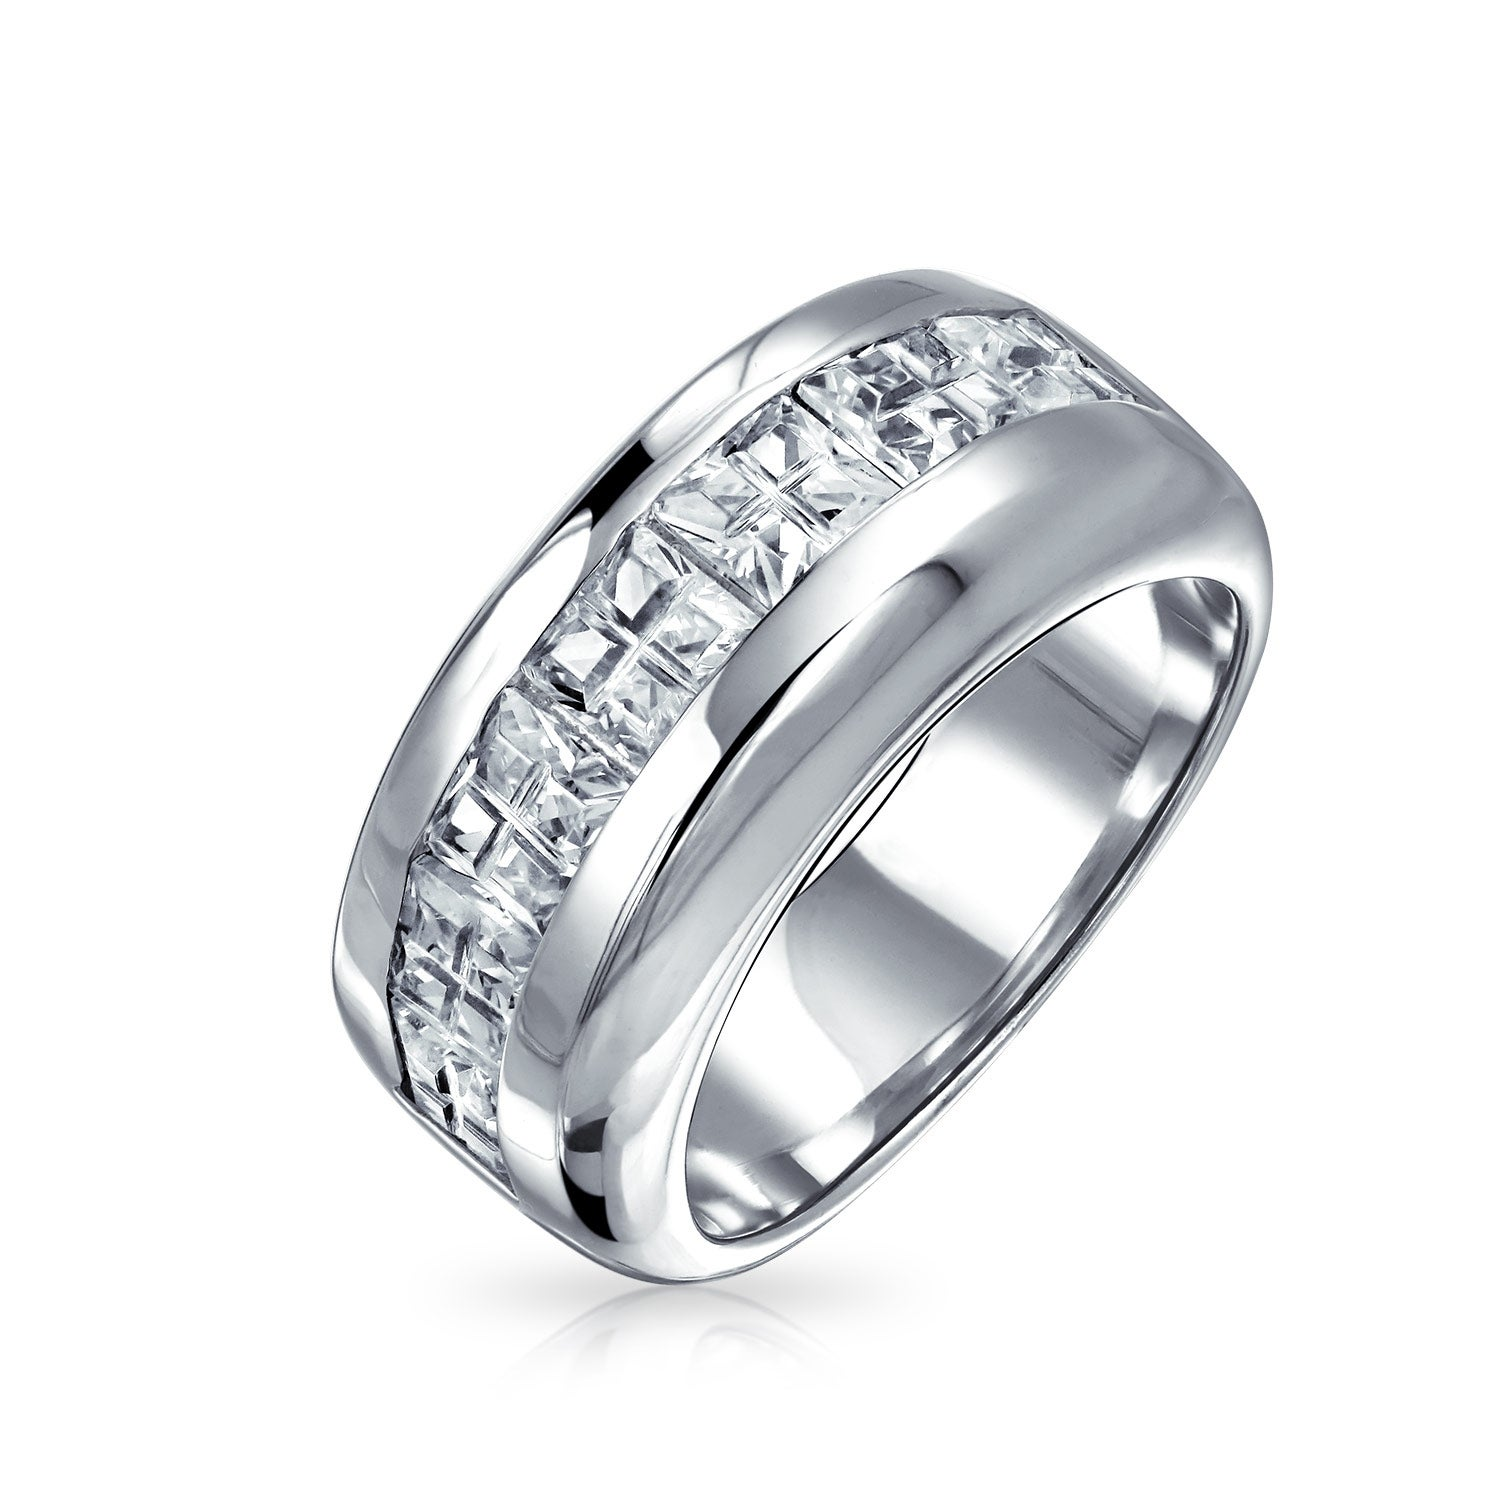 This is a photo of AAA CZ Wide Cubic Zirconia Wedding Band Ring .43 Sterling Silver